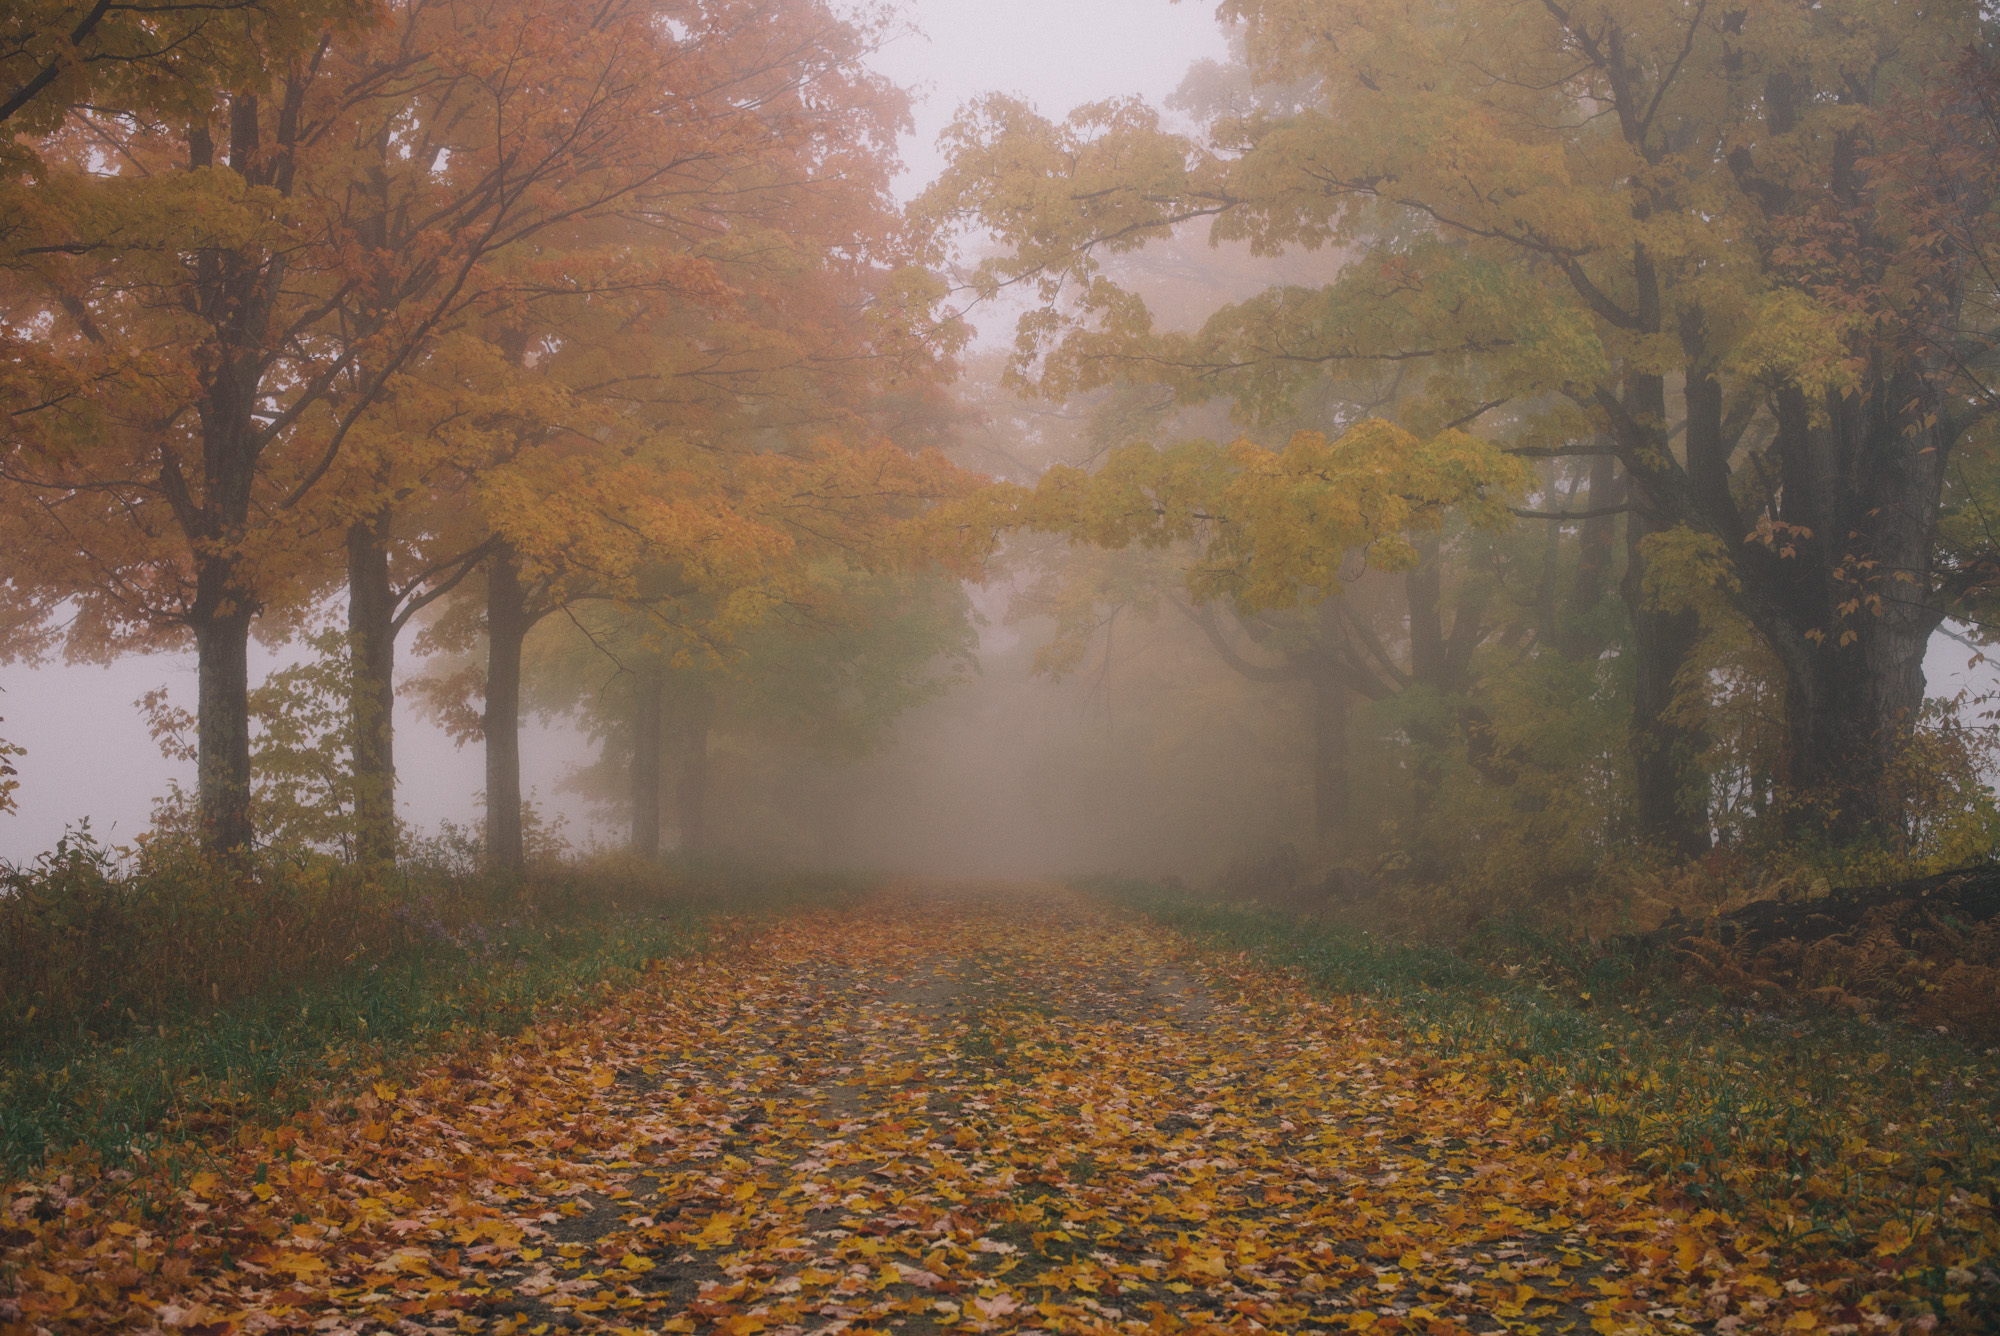 gmg-vermont-foggy-morning-1003396